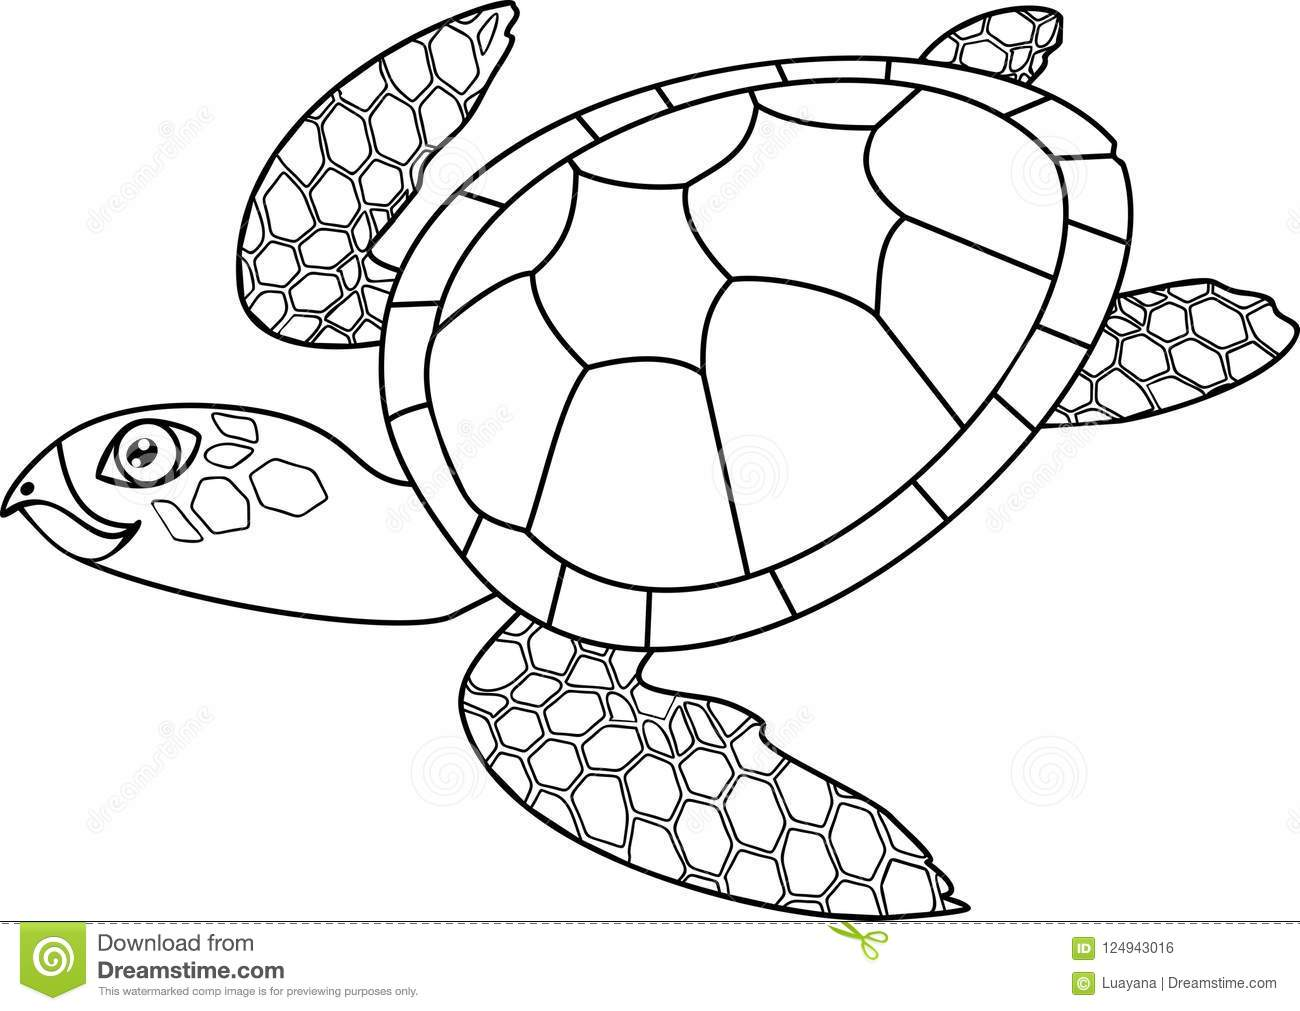 Coloring Page. Adult Cute Cartoon Swimming Sea Turtle Stock Vector ...